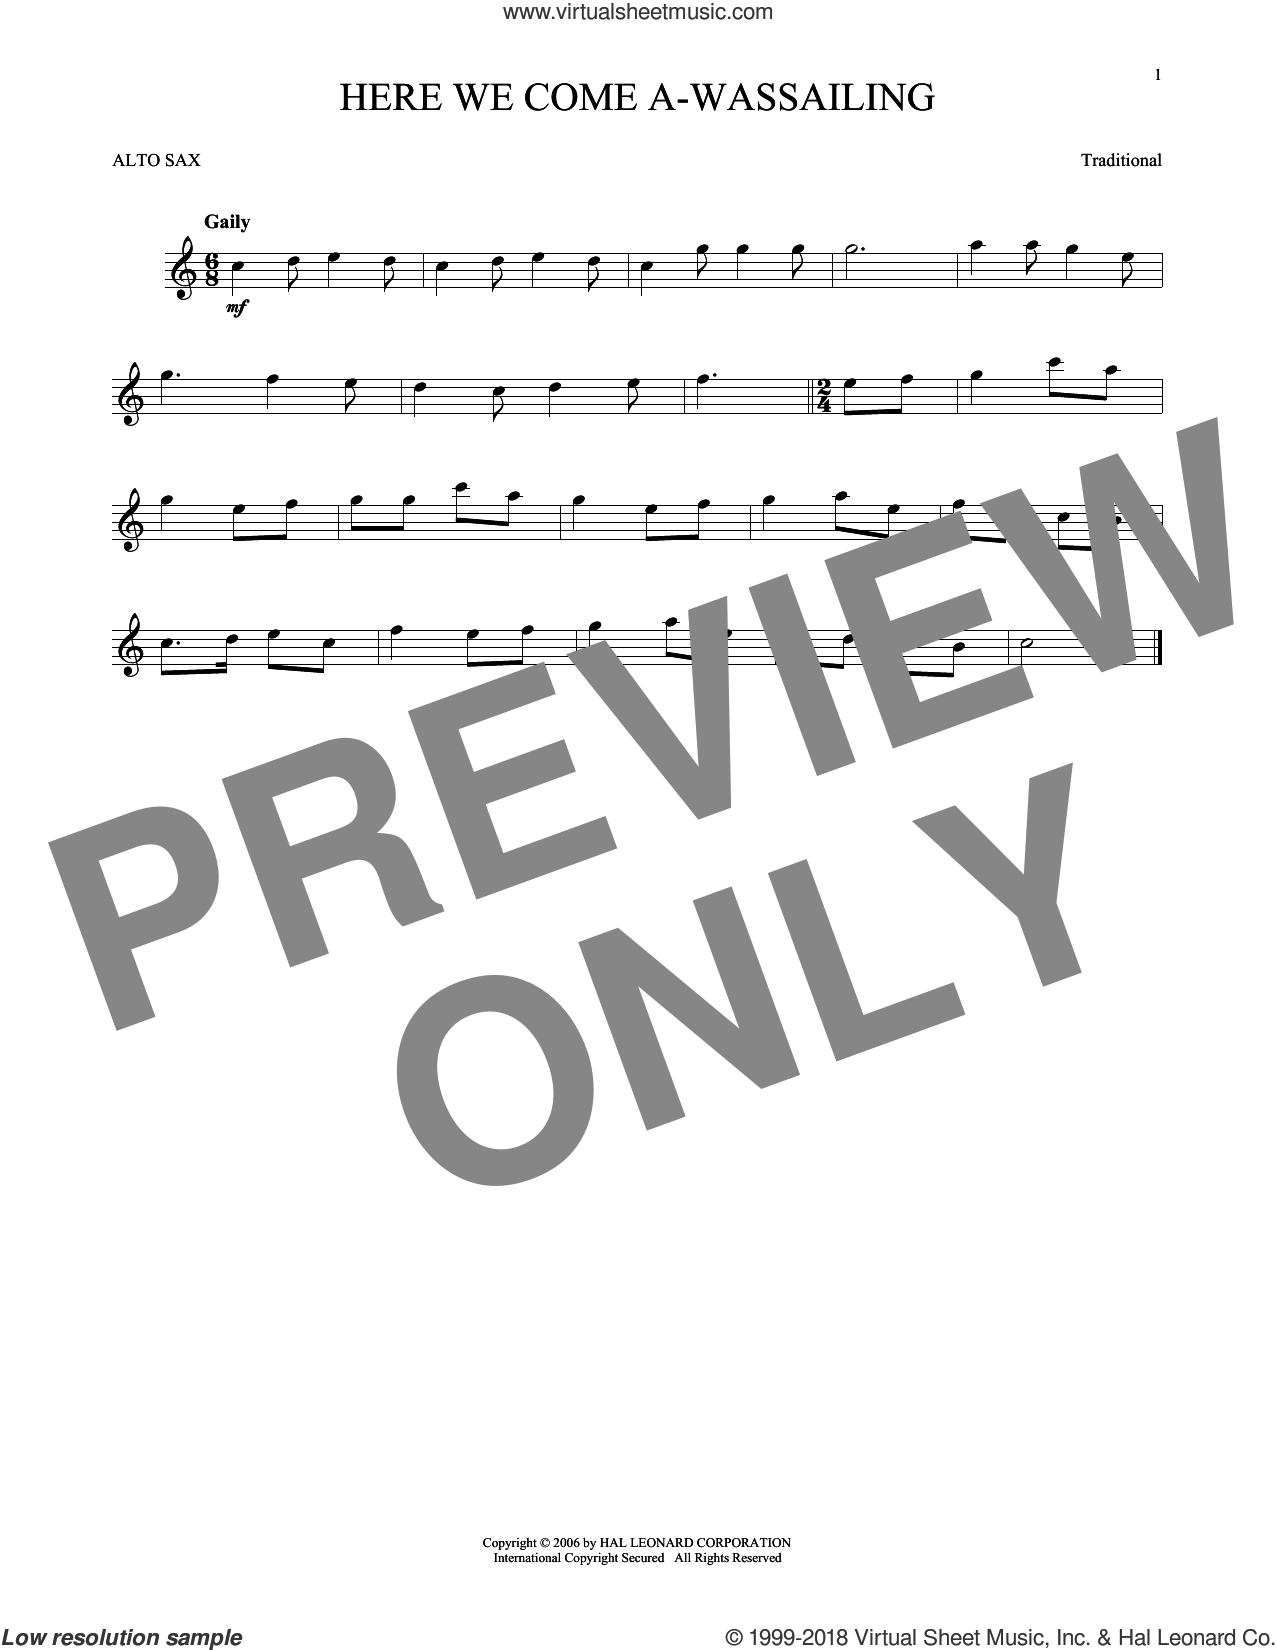 Here We Come A-Wassailing sheet music for alto saxophone solo